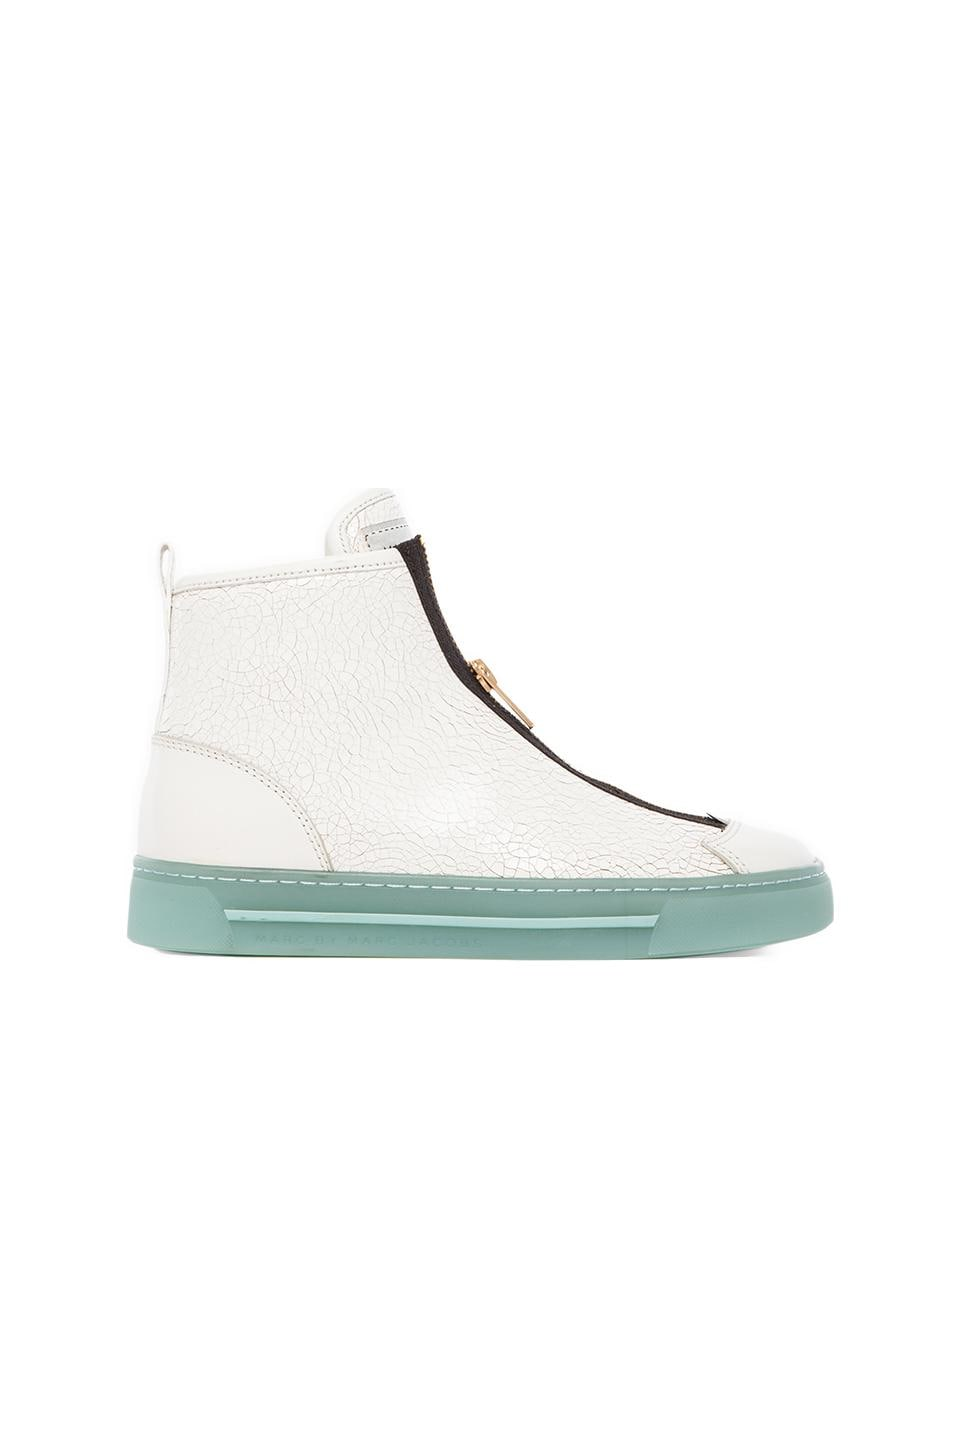 Marc by Marc Jacobs Sneaker in Off White